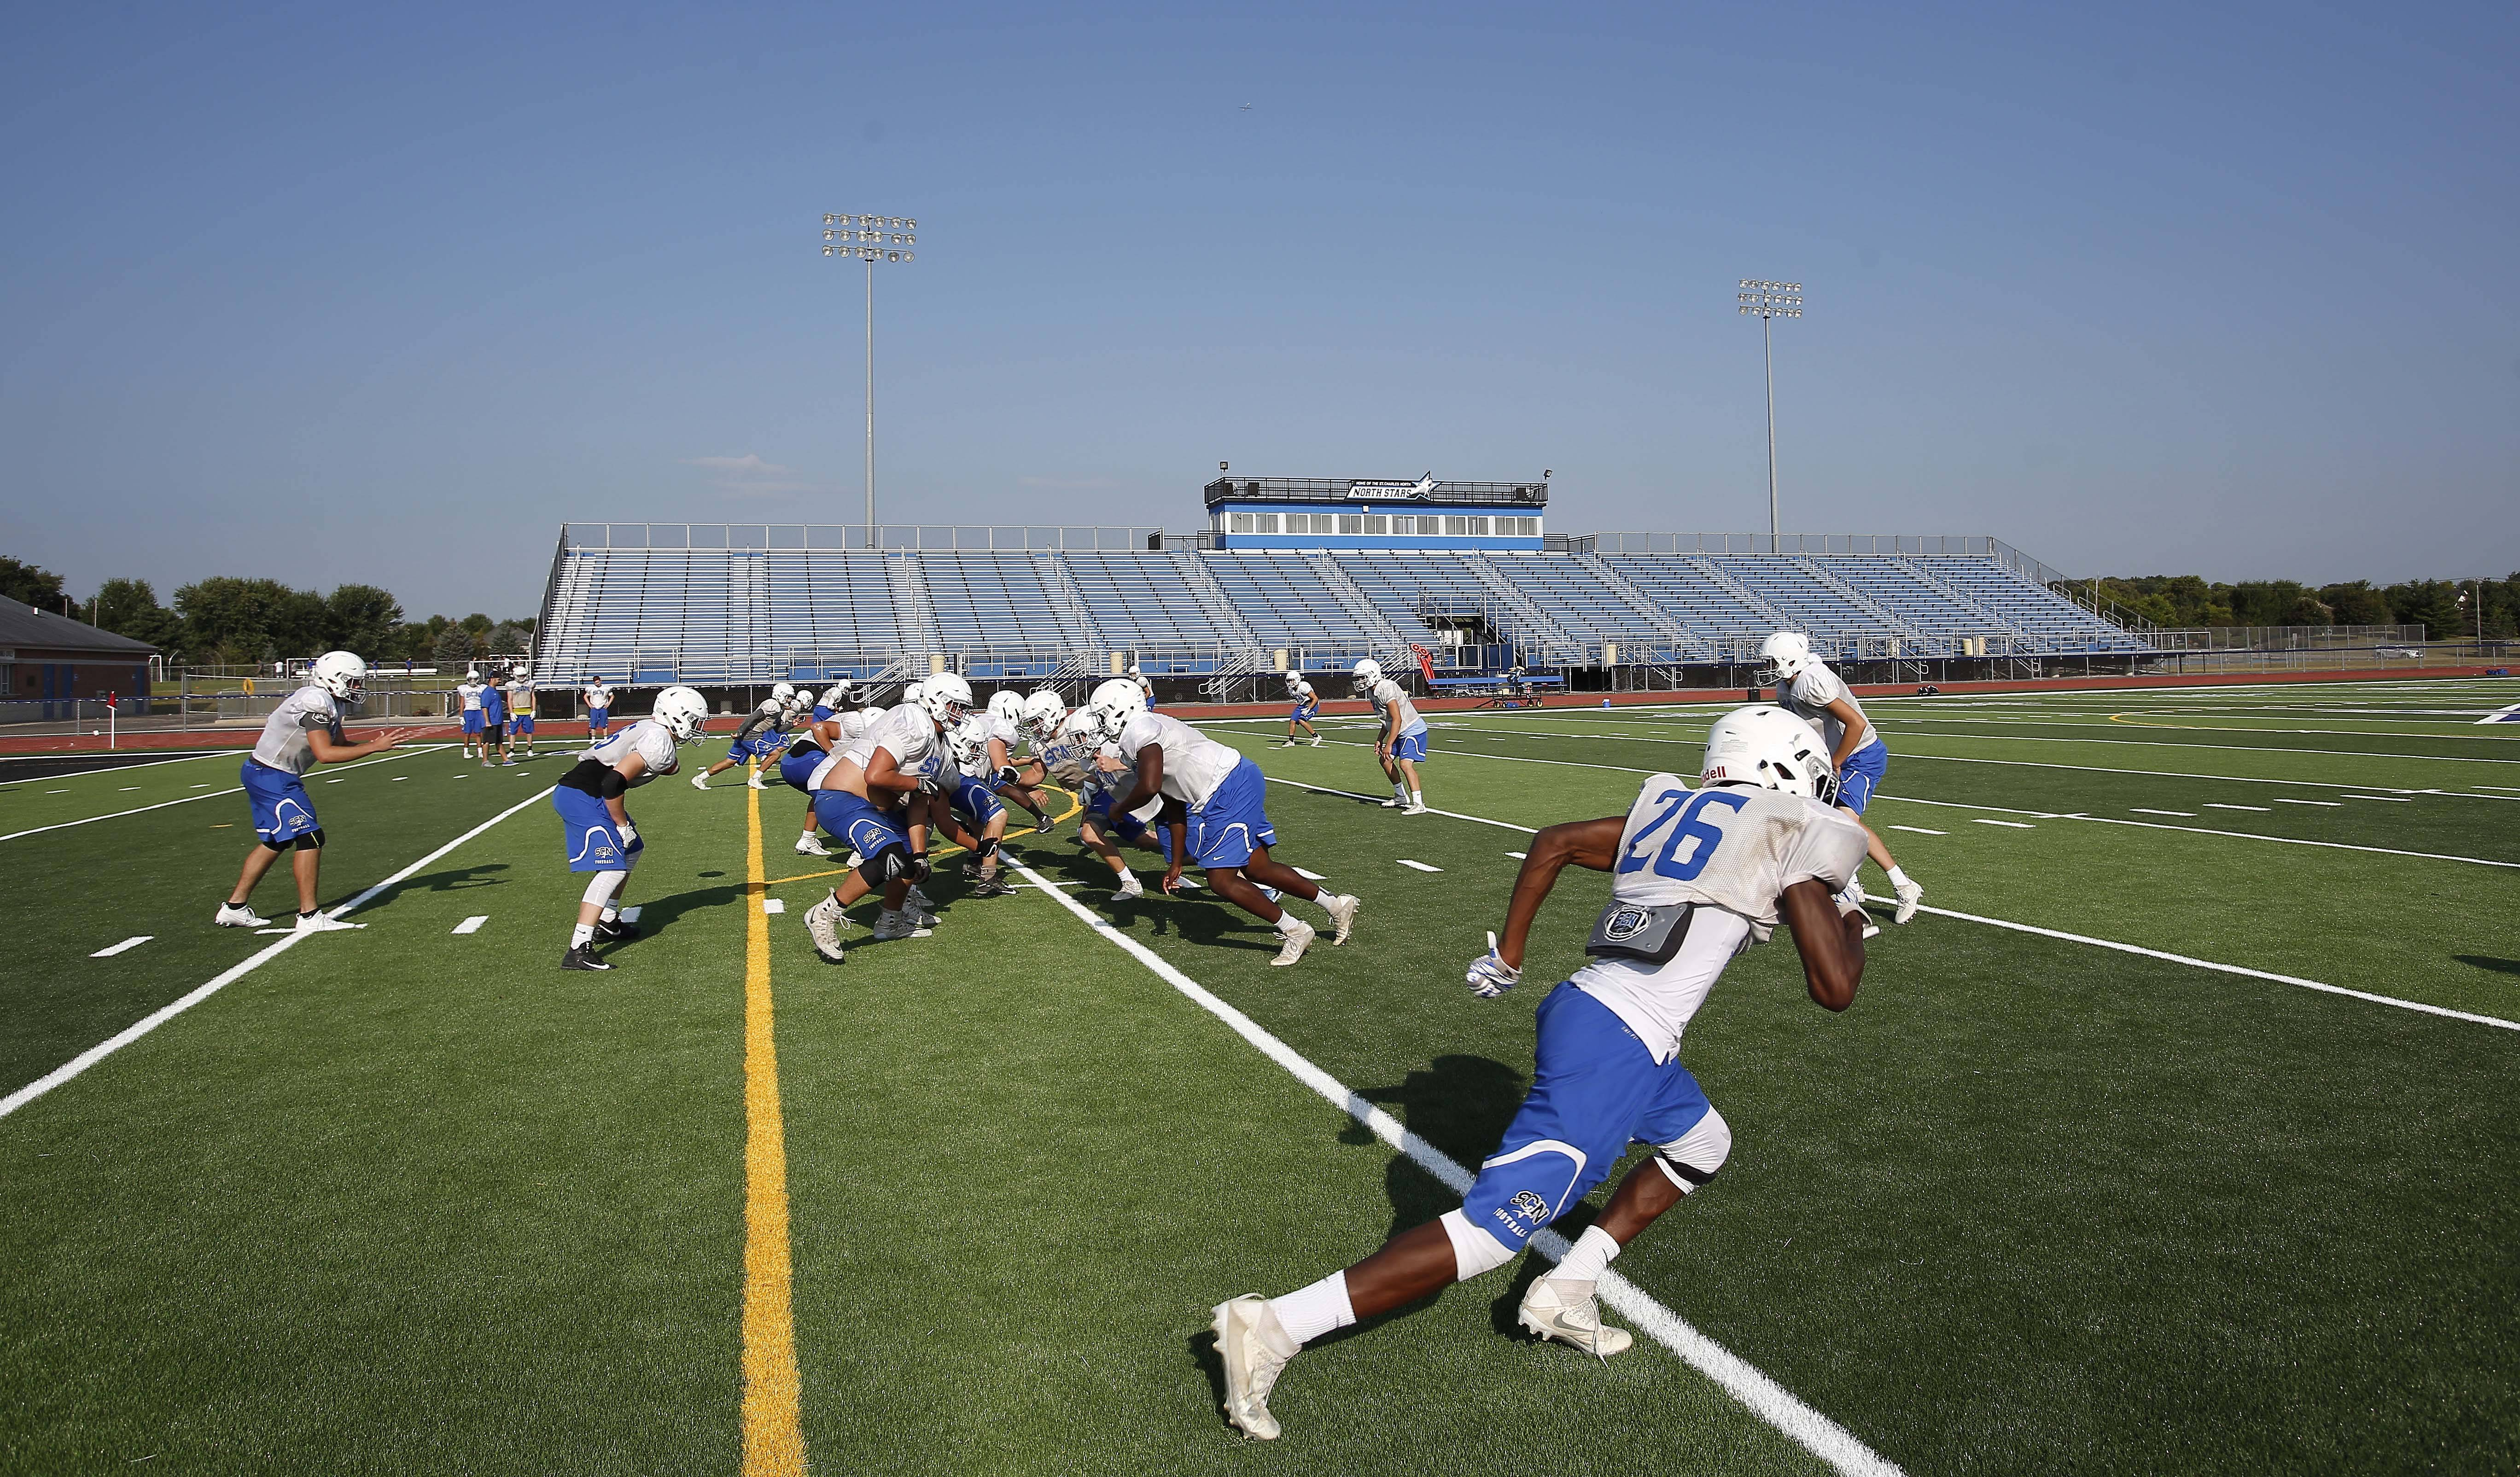 St. Charles North football practice.